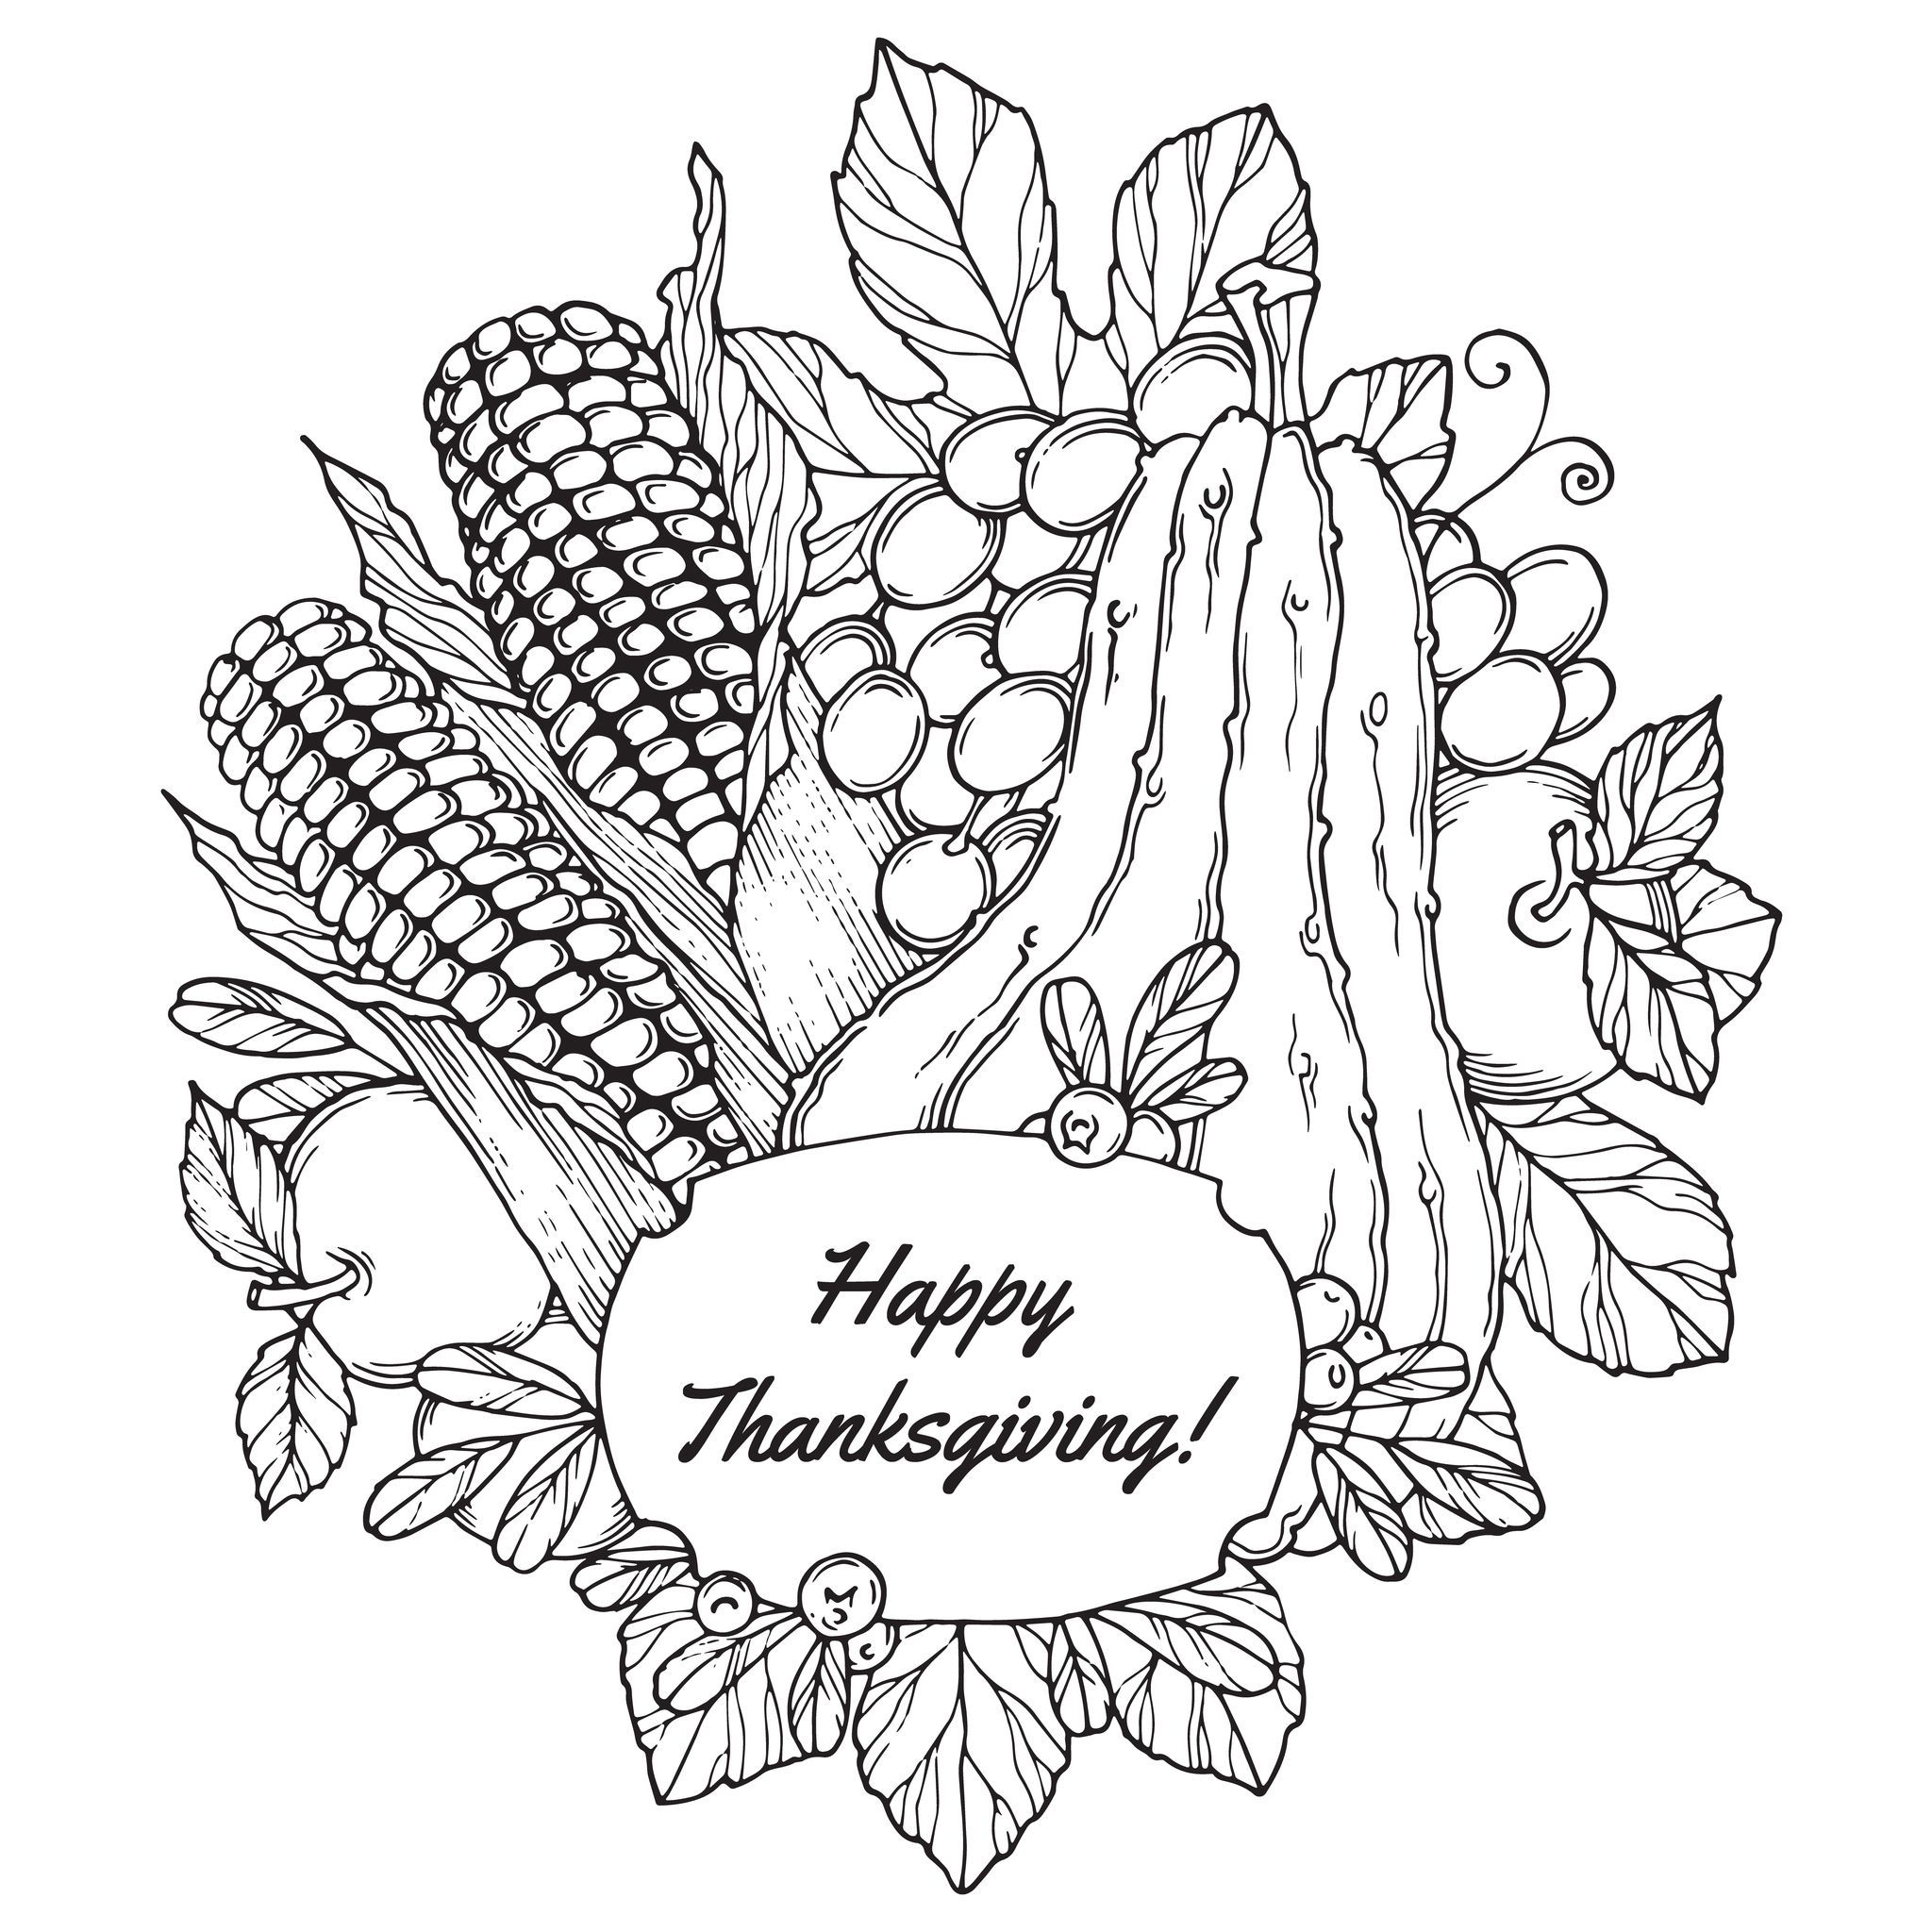 Coloring Page To Color In October With Berries Vegetables